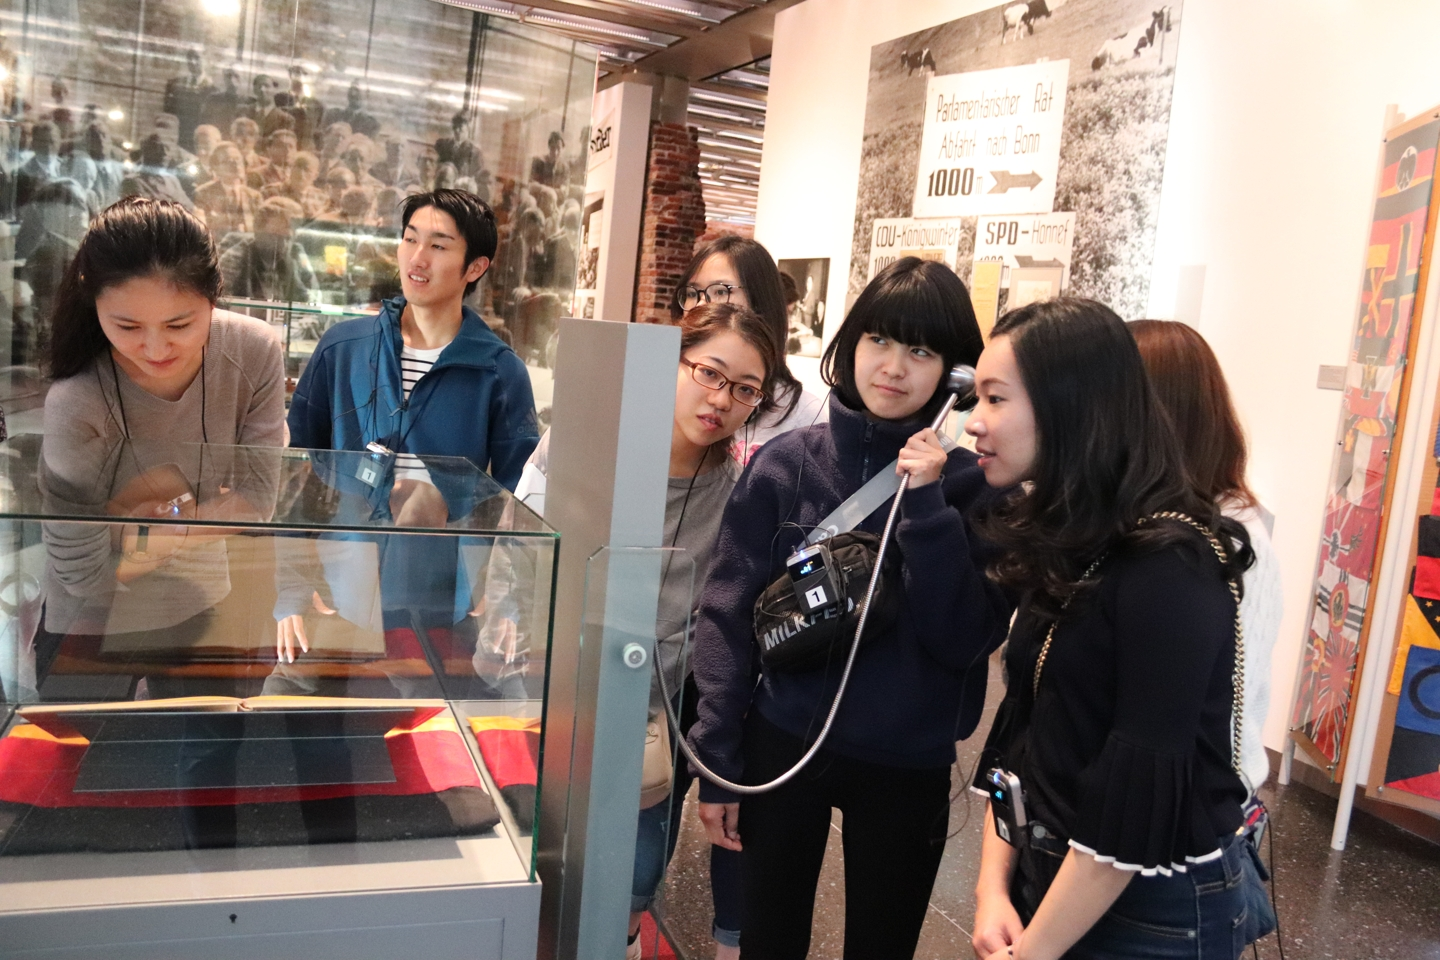 Students looking at exhibits. One student is holding a speaker to her ear and is listening to the explanation.